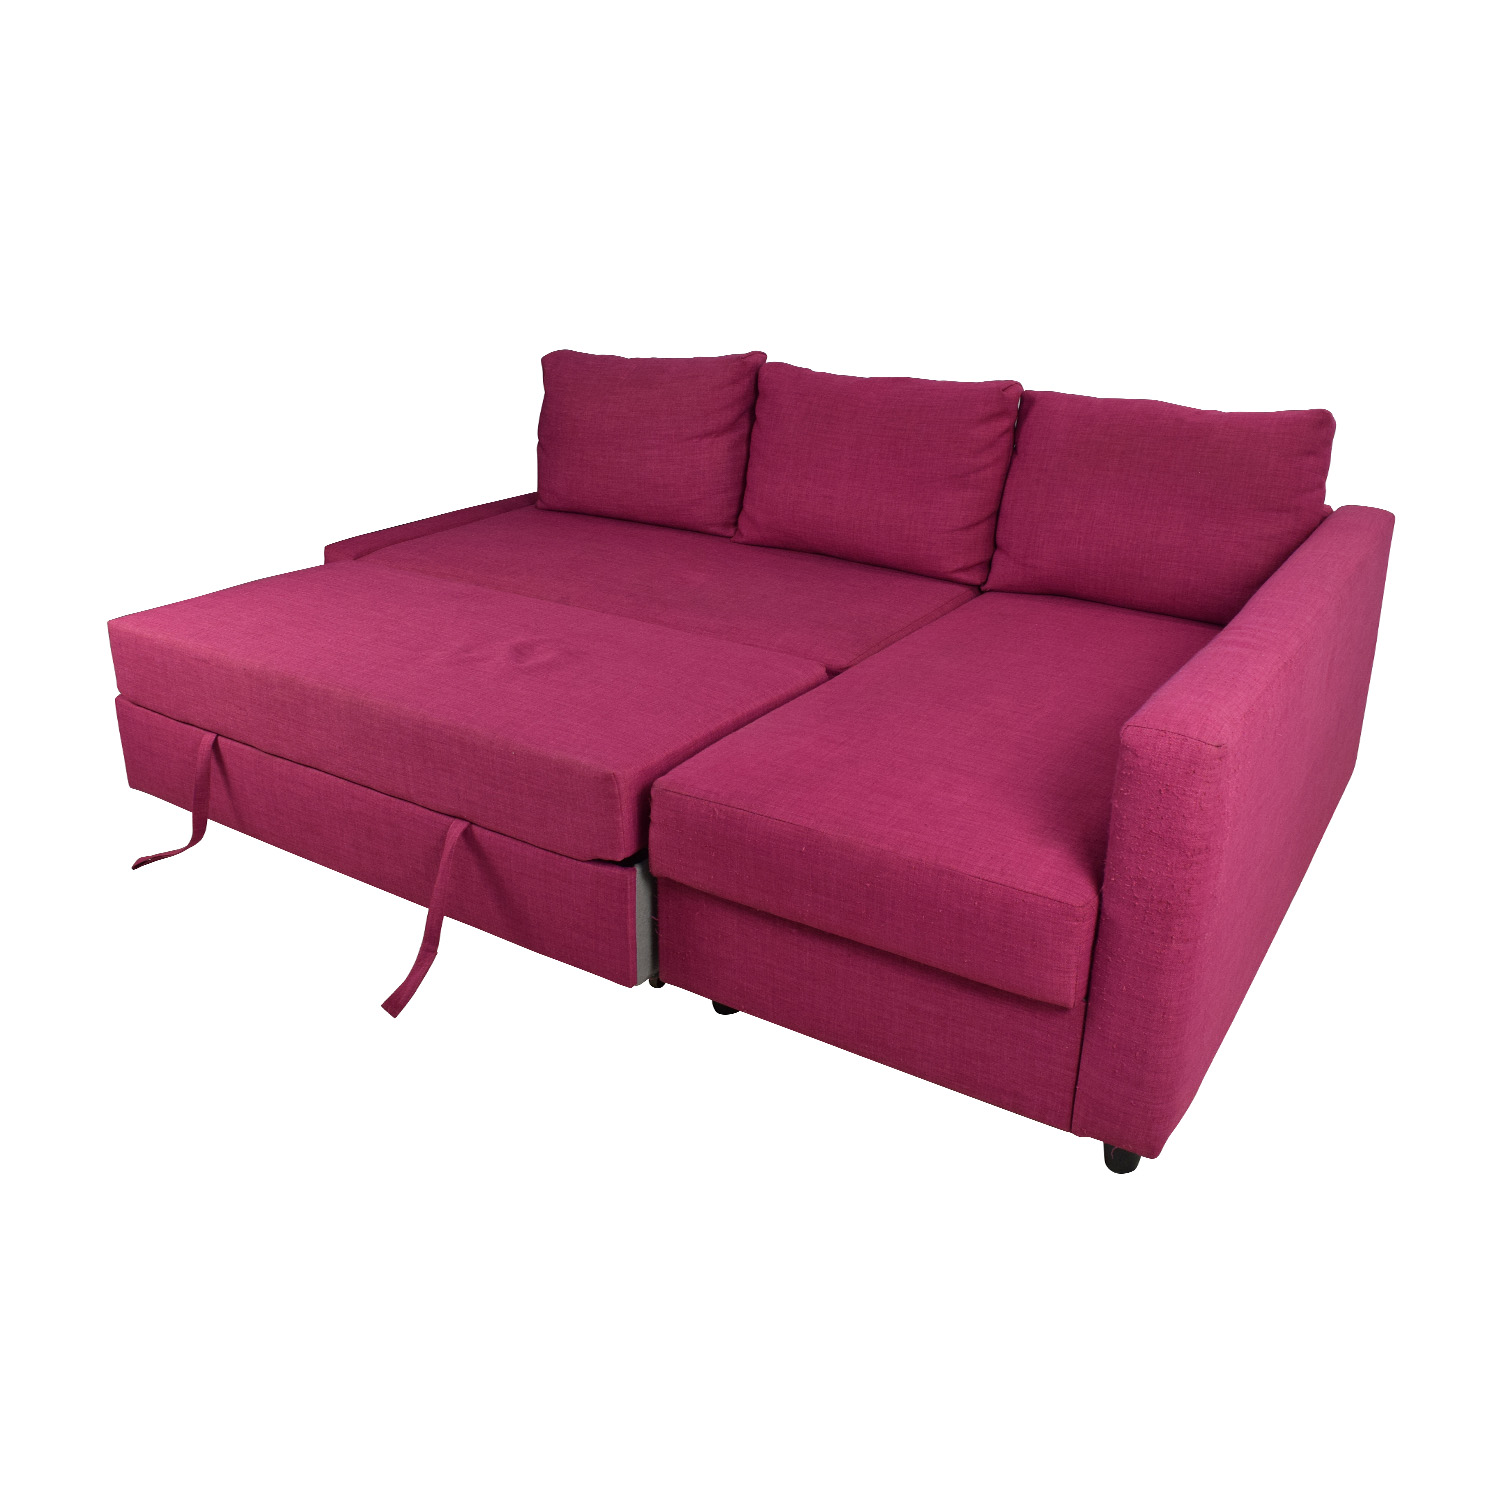 pink sofa ikea klippan loveseat ikea the cover is easy to. Black Bedroom Furniture Sets. Home Design Ideas